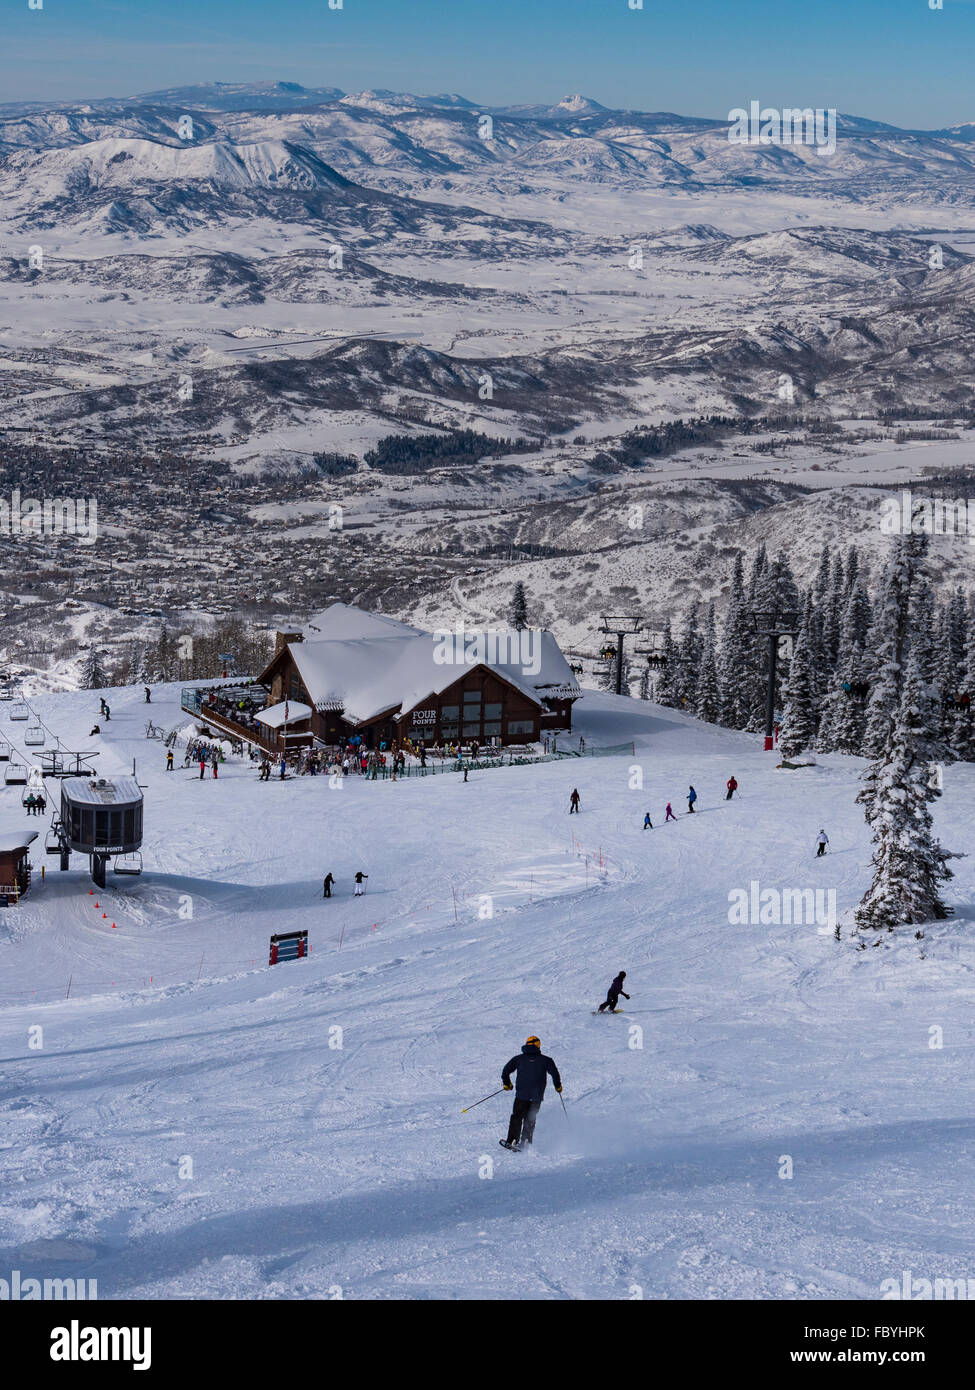 Four Points Lodge, Steamboat Ski Resort, Steamboat Springs, Colorado. - Stock Image